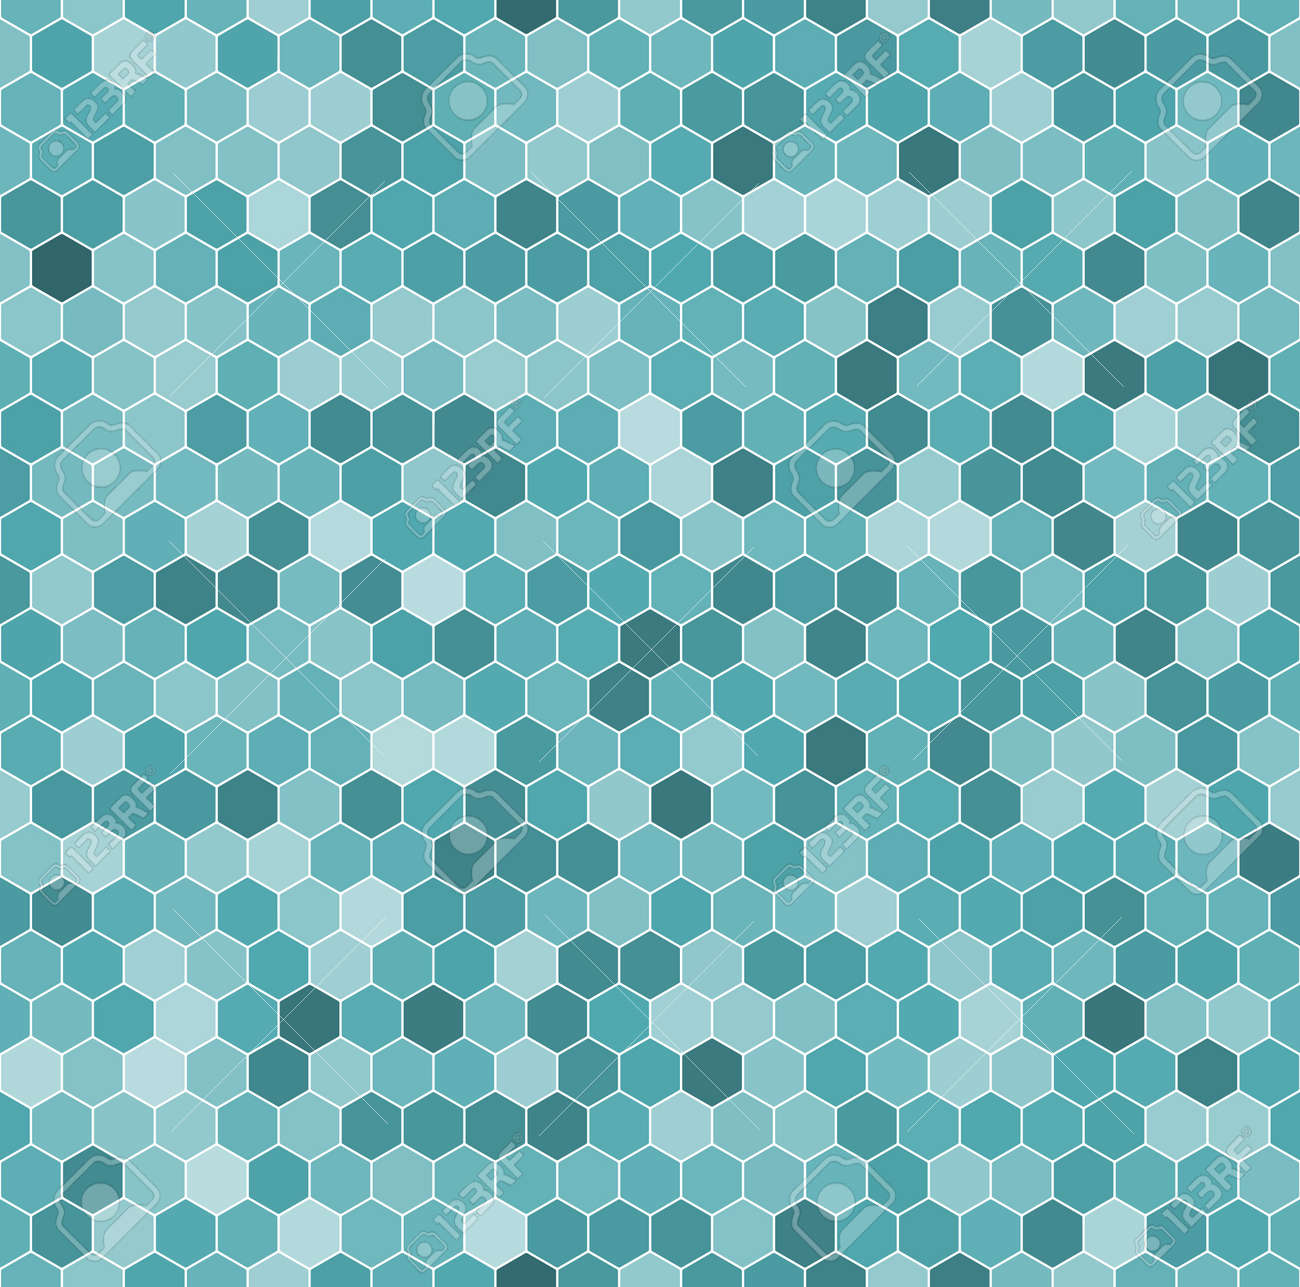 Seamless Pattern Of The Hexagon Mosaic Tiles Royalty Free Cliparts ...